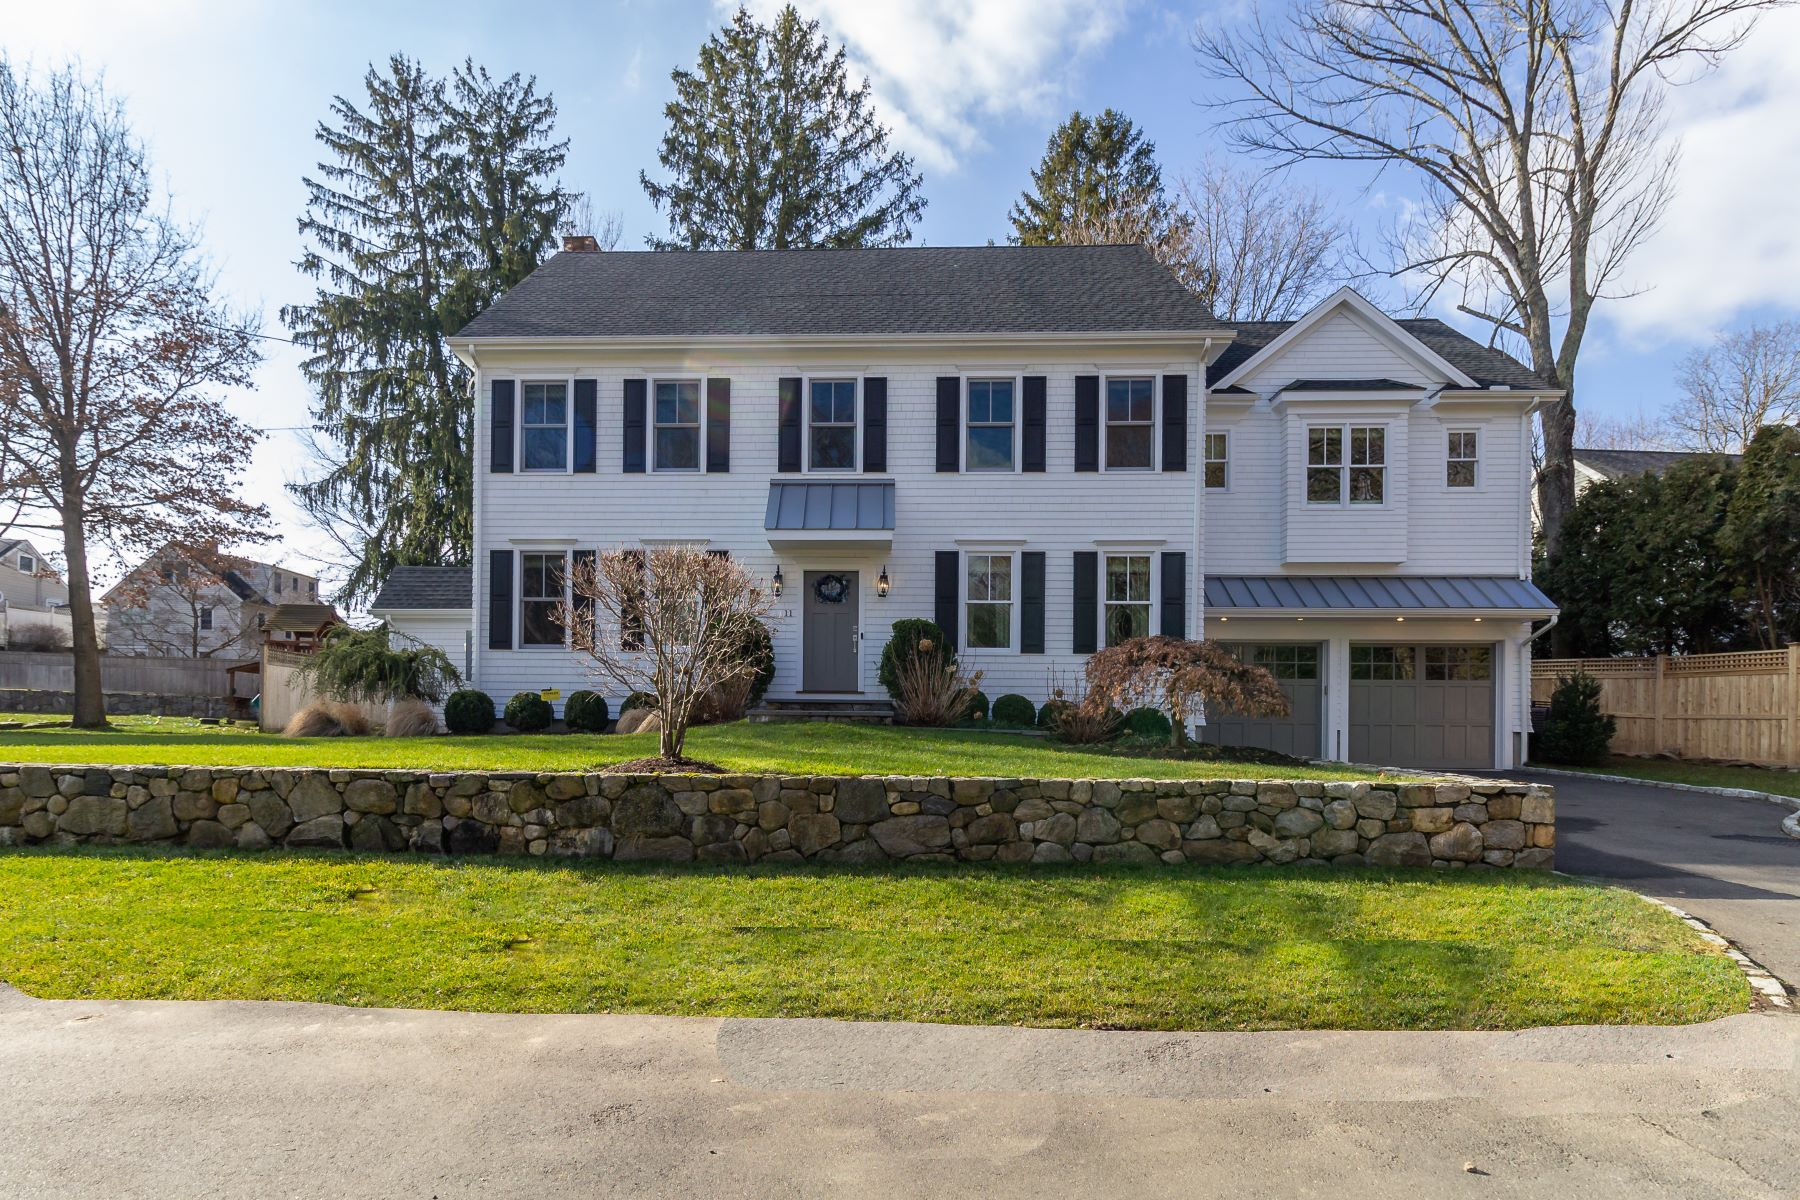 Single Family Homes for Active at Charming Colonial in Desirable Greens Farms! 11 Kirock Place Westport, Connecticut 06880 United States